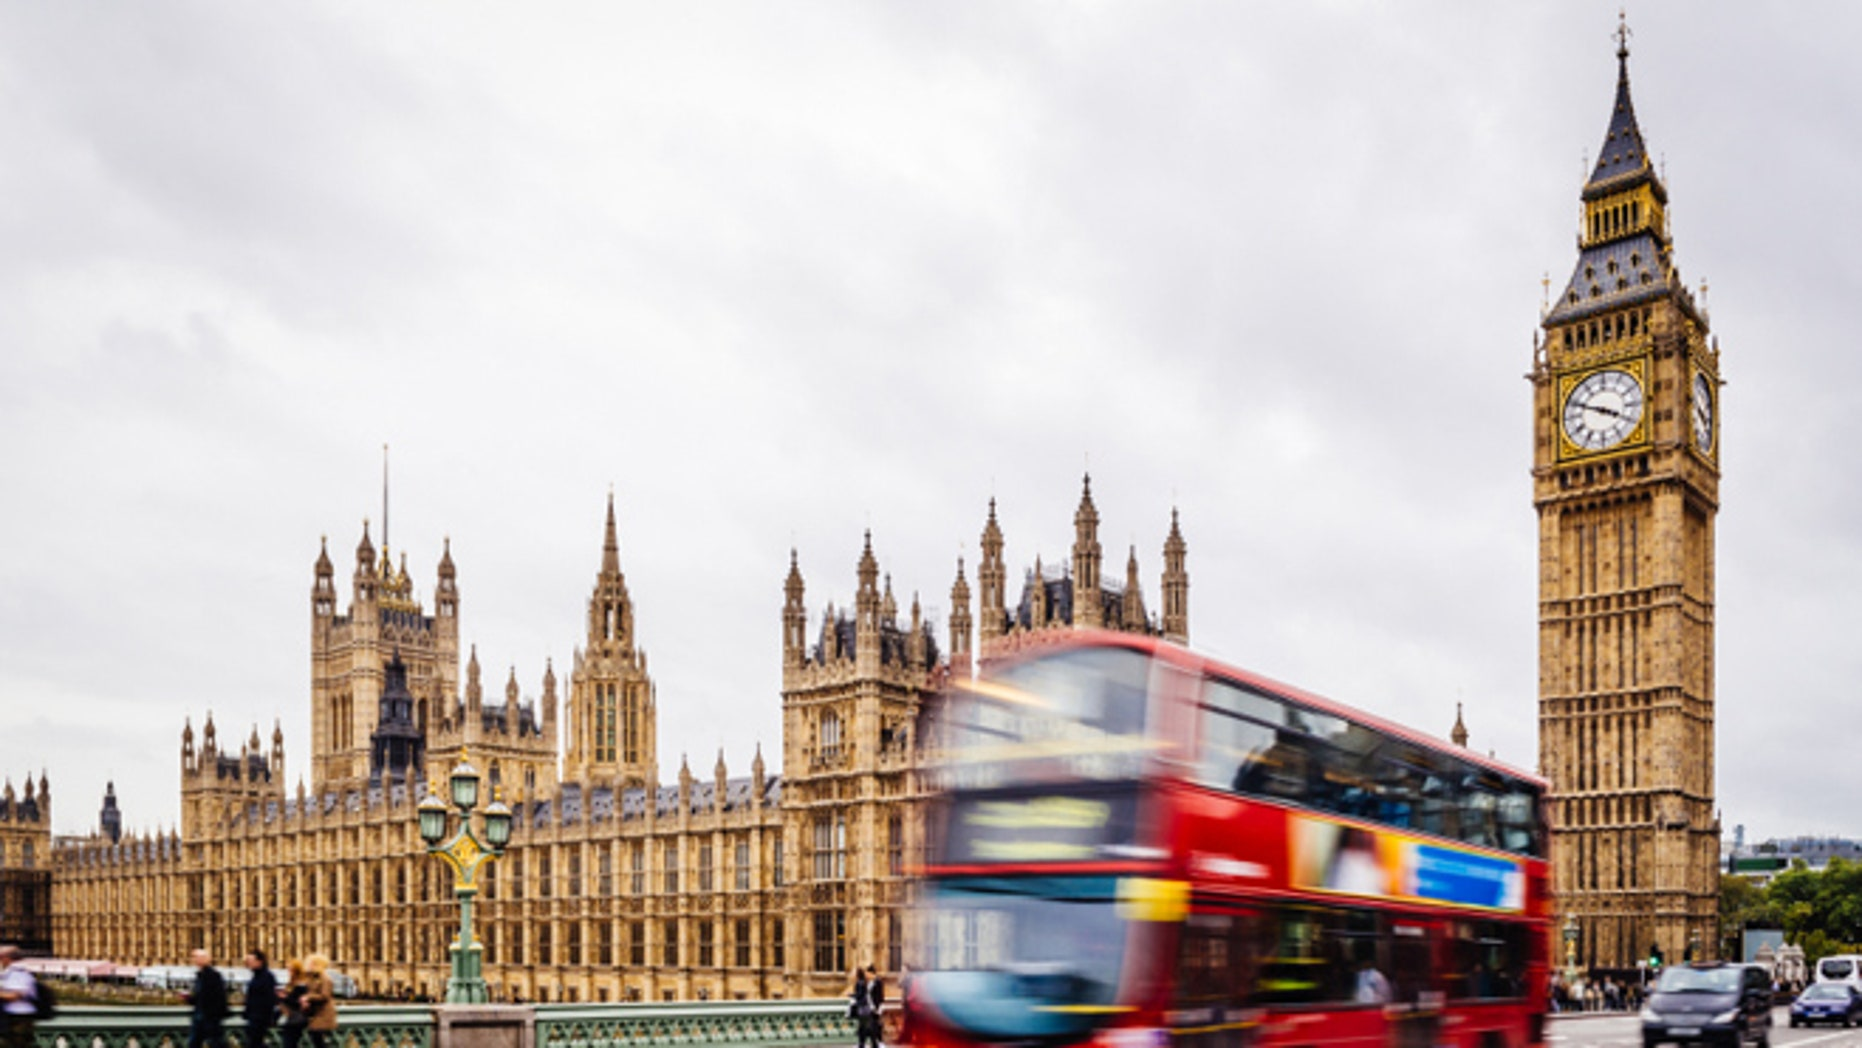 London is expecting a record-breaking number of tourists this year.